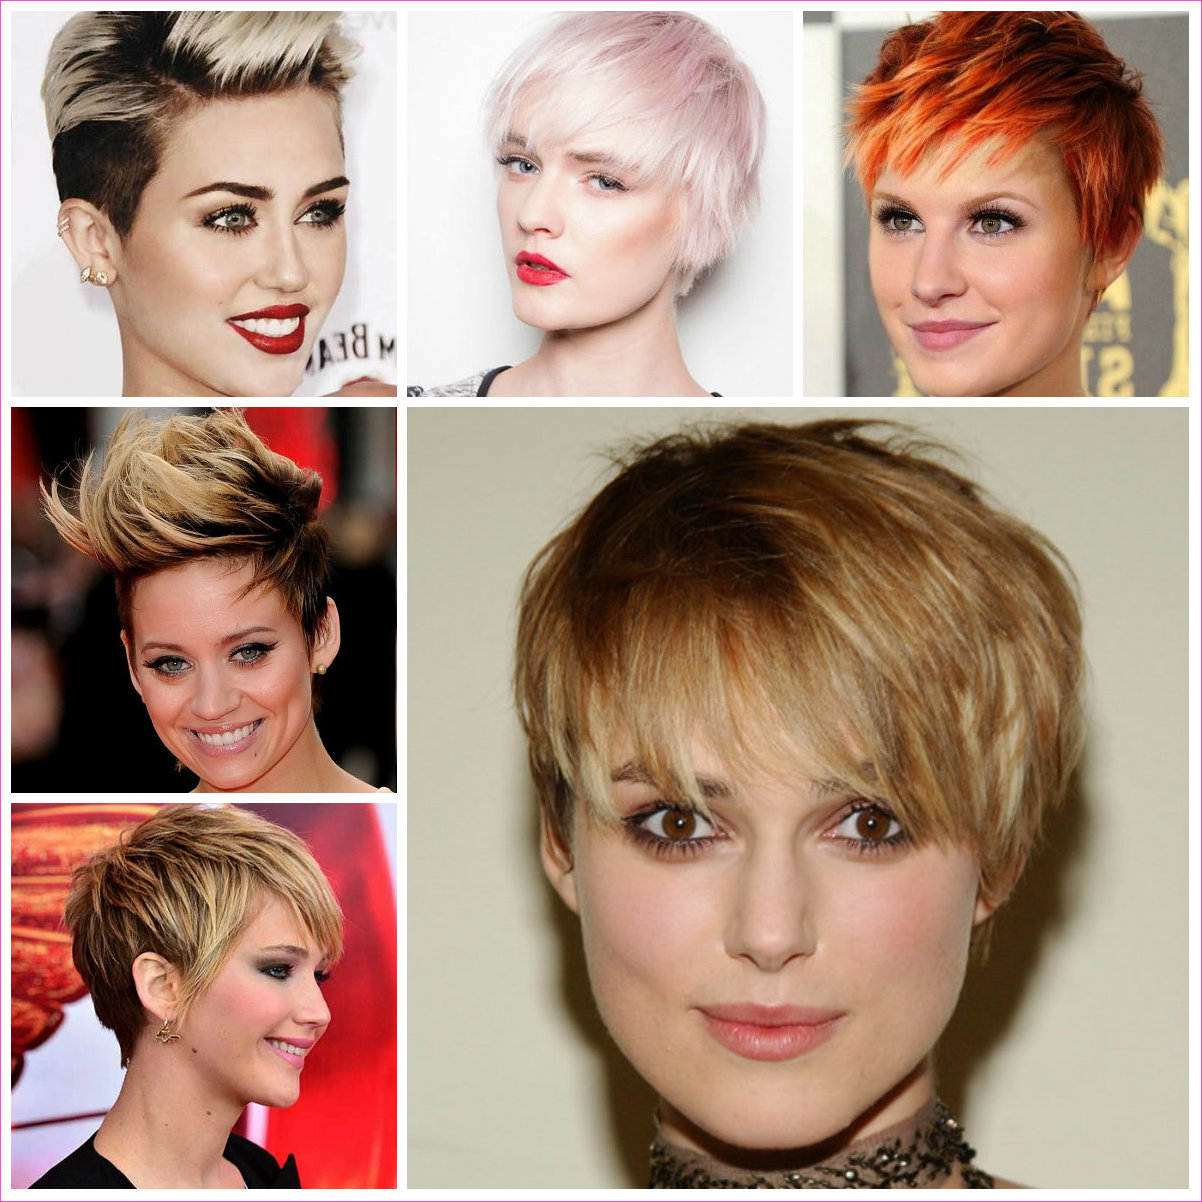 Trendy Pixie Ombre Hairstyles 2019 | Hairstyles for Women 2019 ...